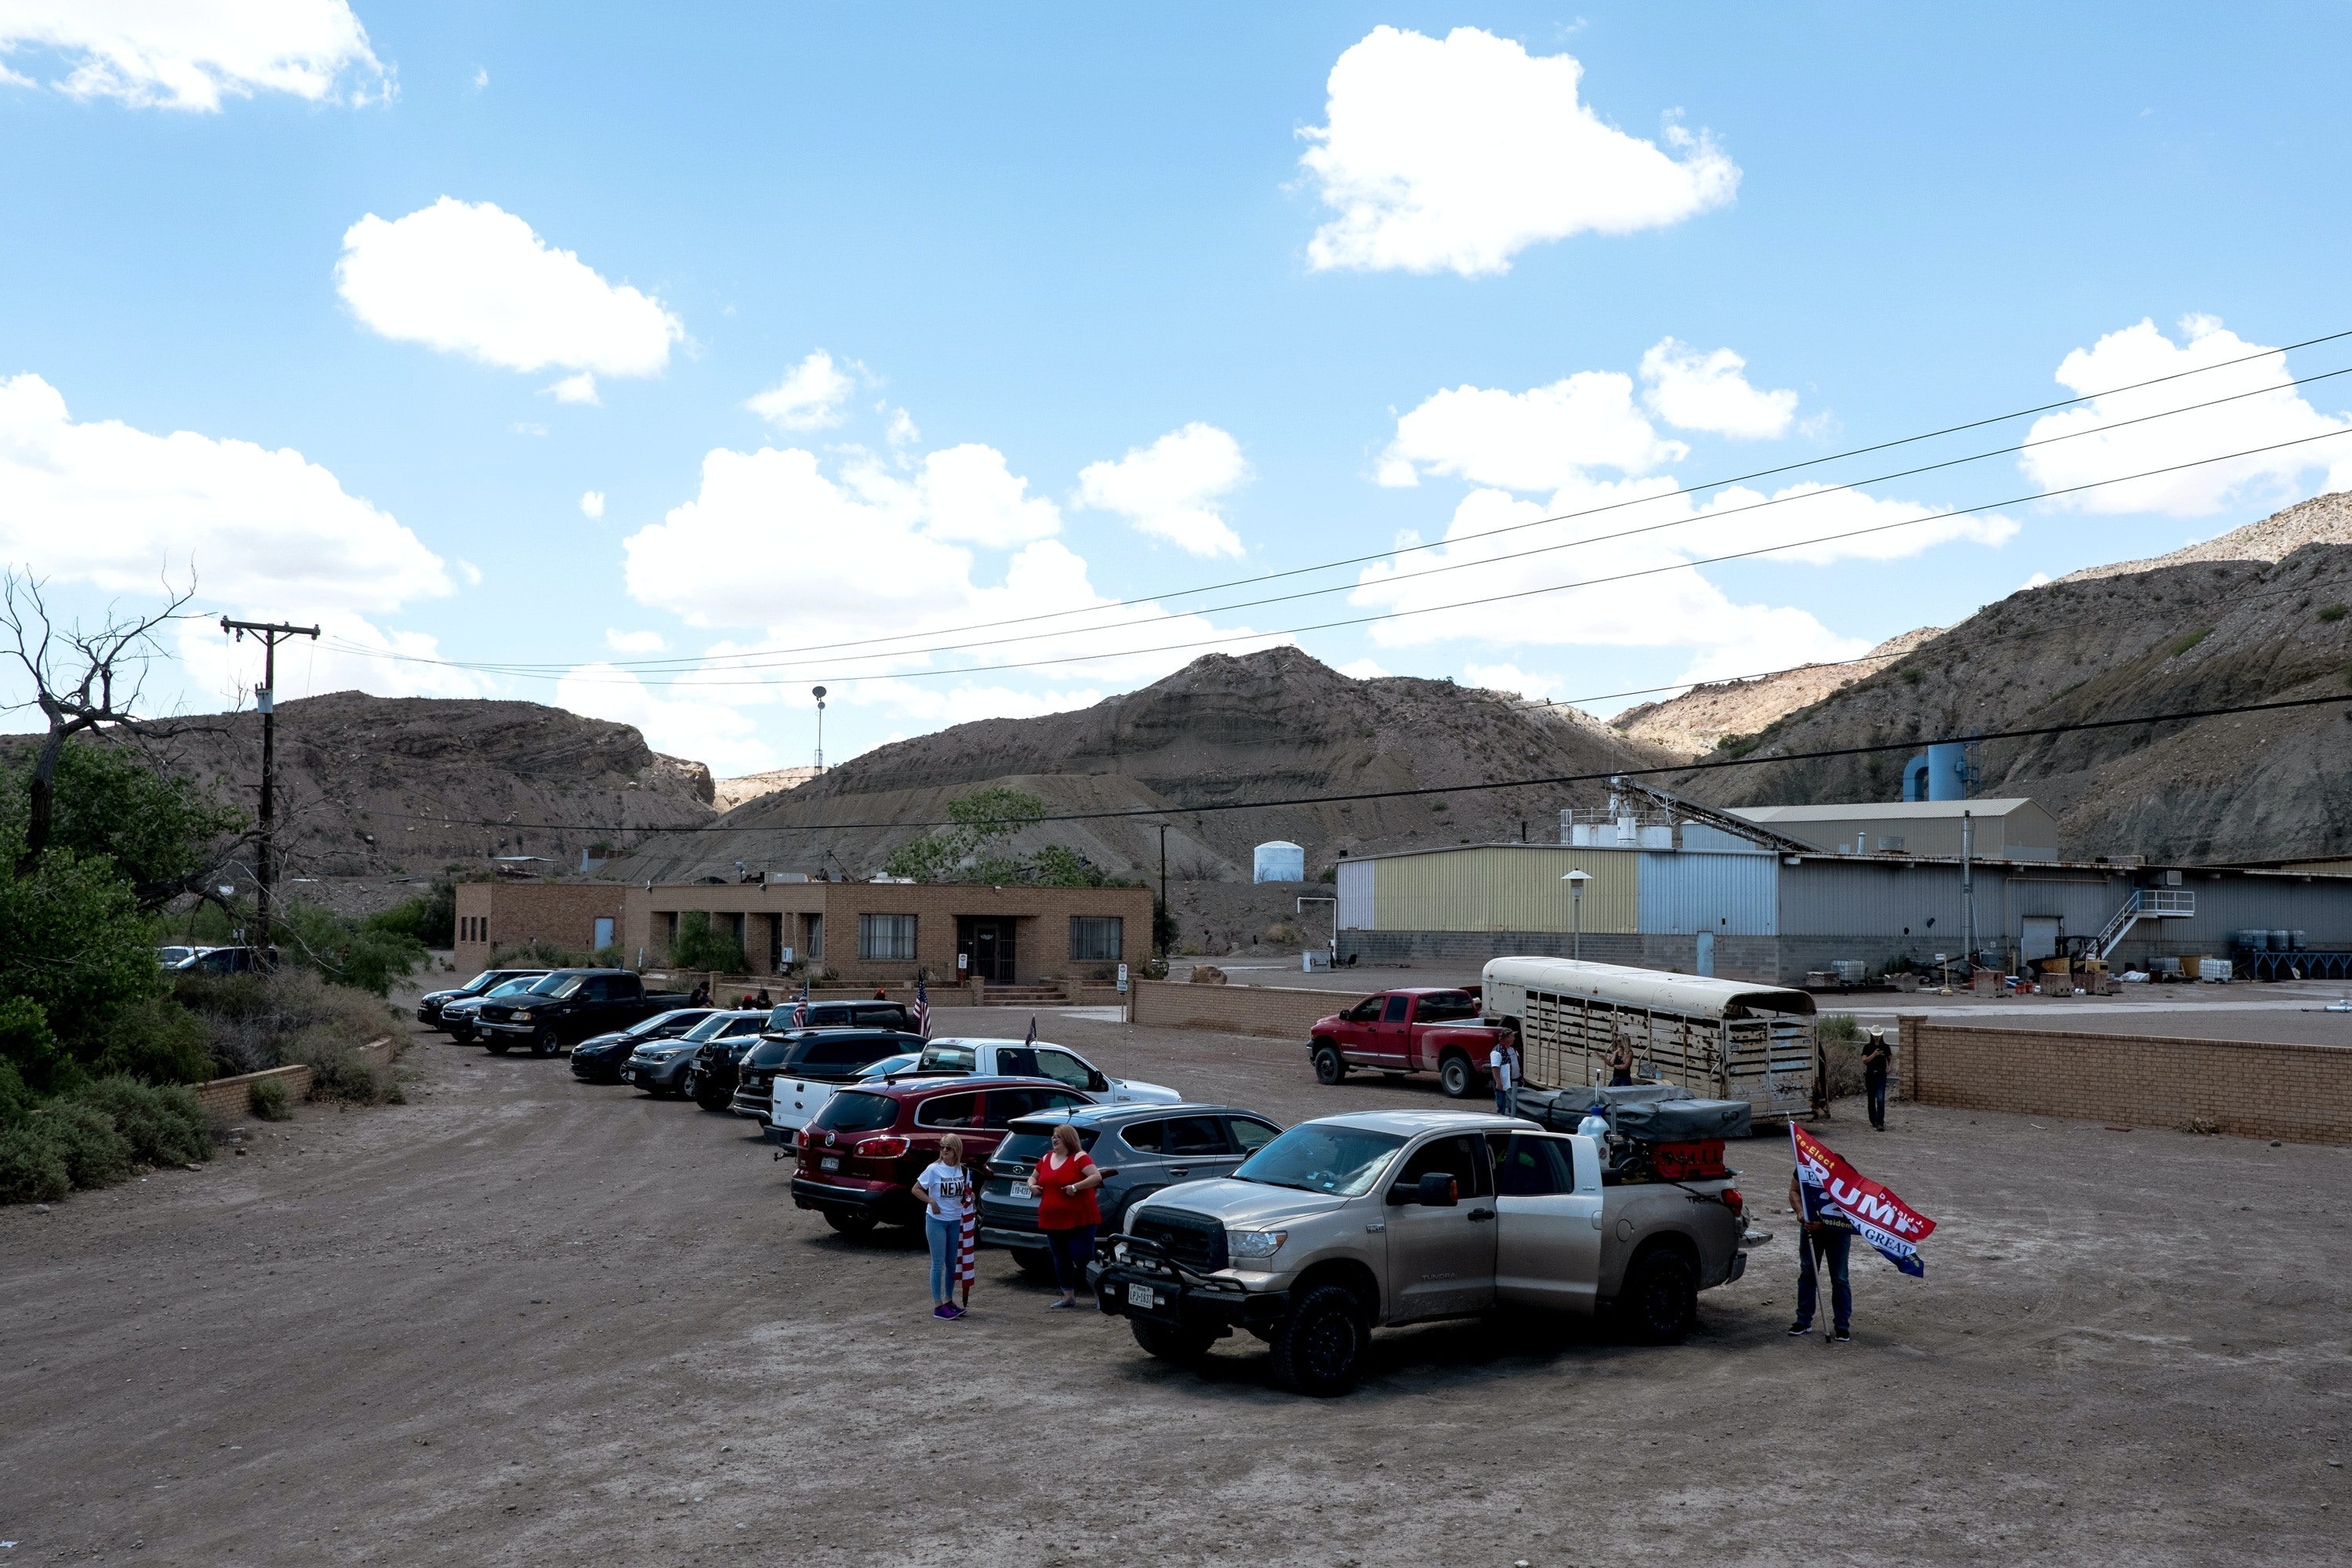 Trump supporters gather on land owned by the American Eagle Brick Company along U.S.-México border on the outskirts of Sunland Park, New Mexico, Saturday, May 11, 2019. (Joel Angel Juárez for The Intercept)